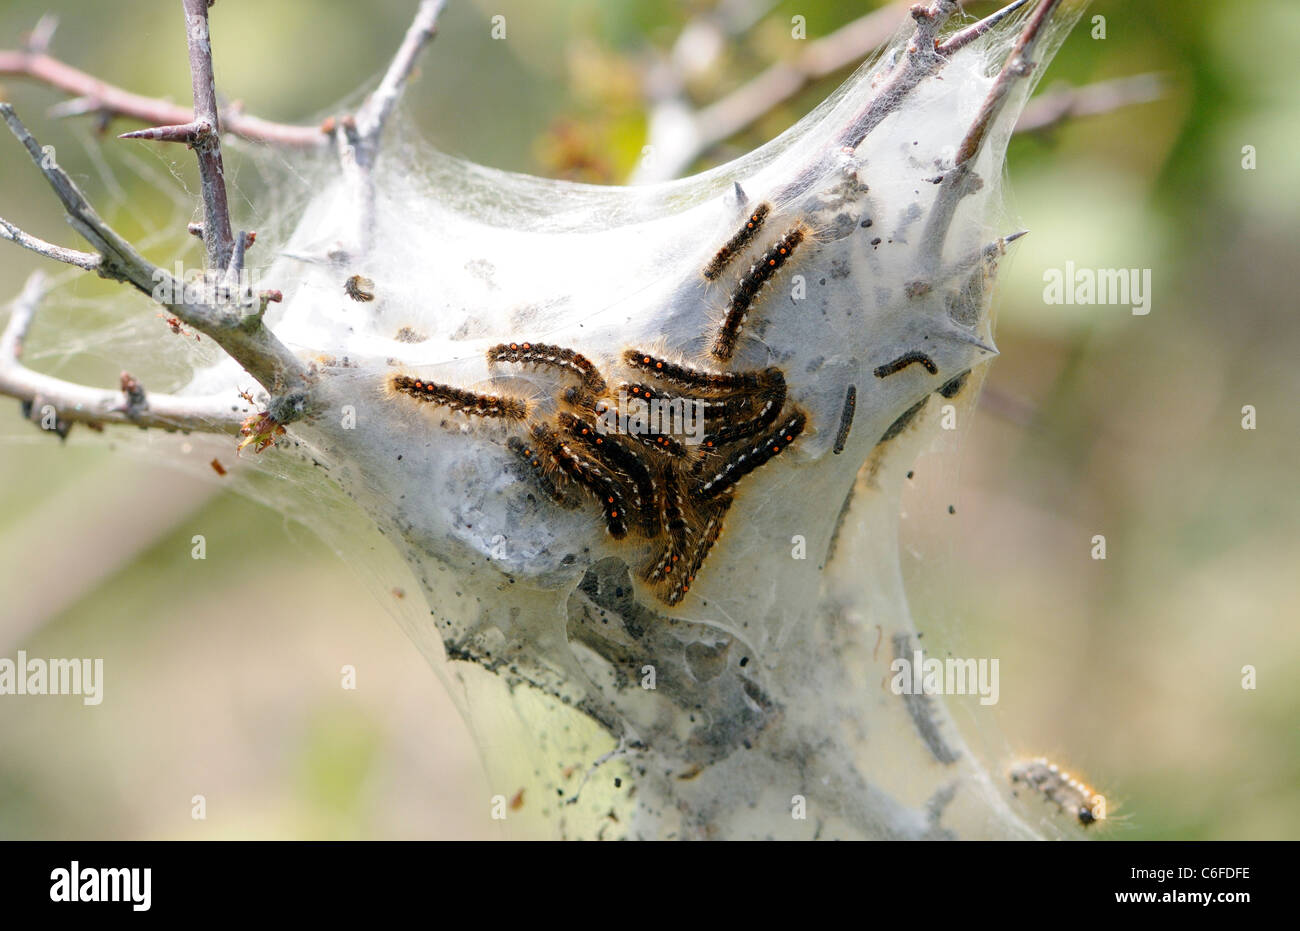 Lava and protective silk tent of the Brown tail moth (Euproctis chrysorrhoea) in a & Lava and protective silk tent of the Brown tail moth (Euproctis ...